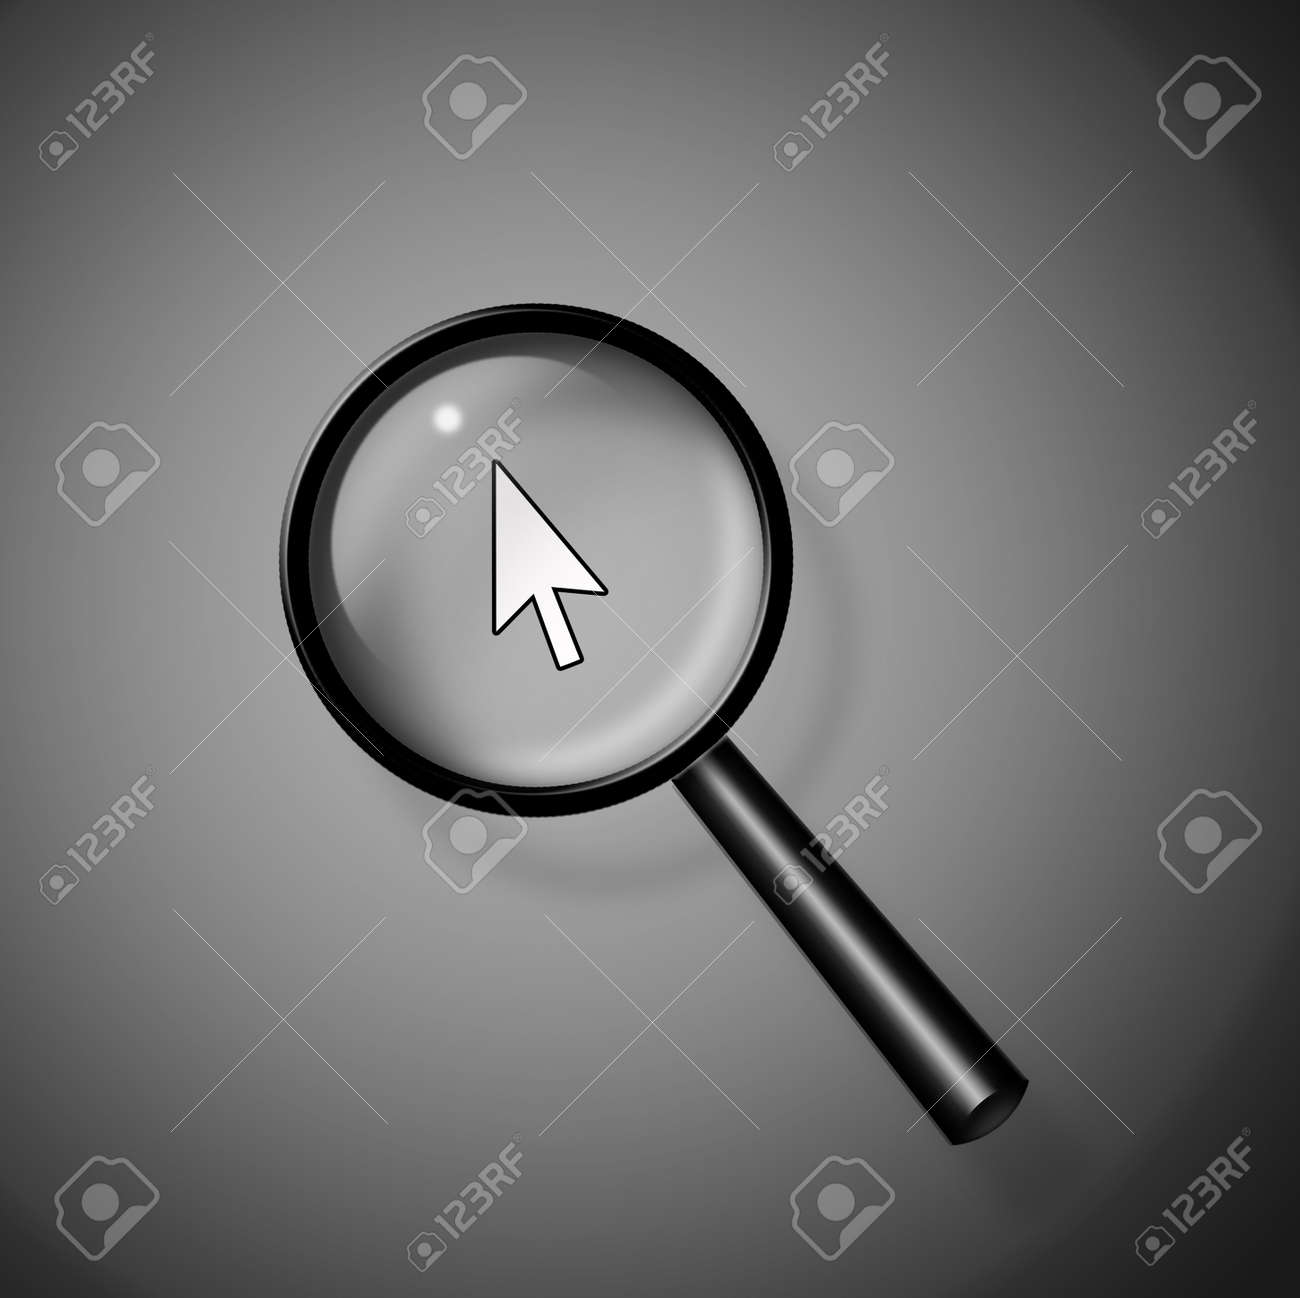 Computer Search Stock Photo - 19122489